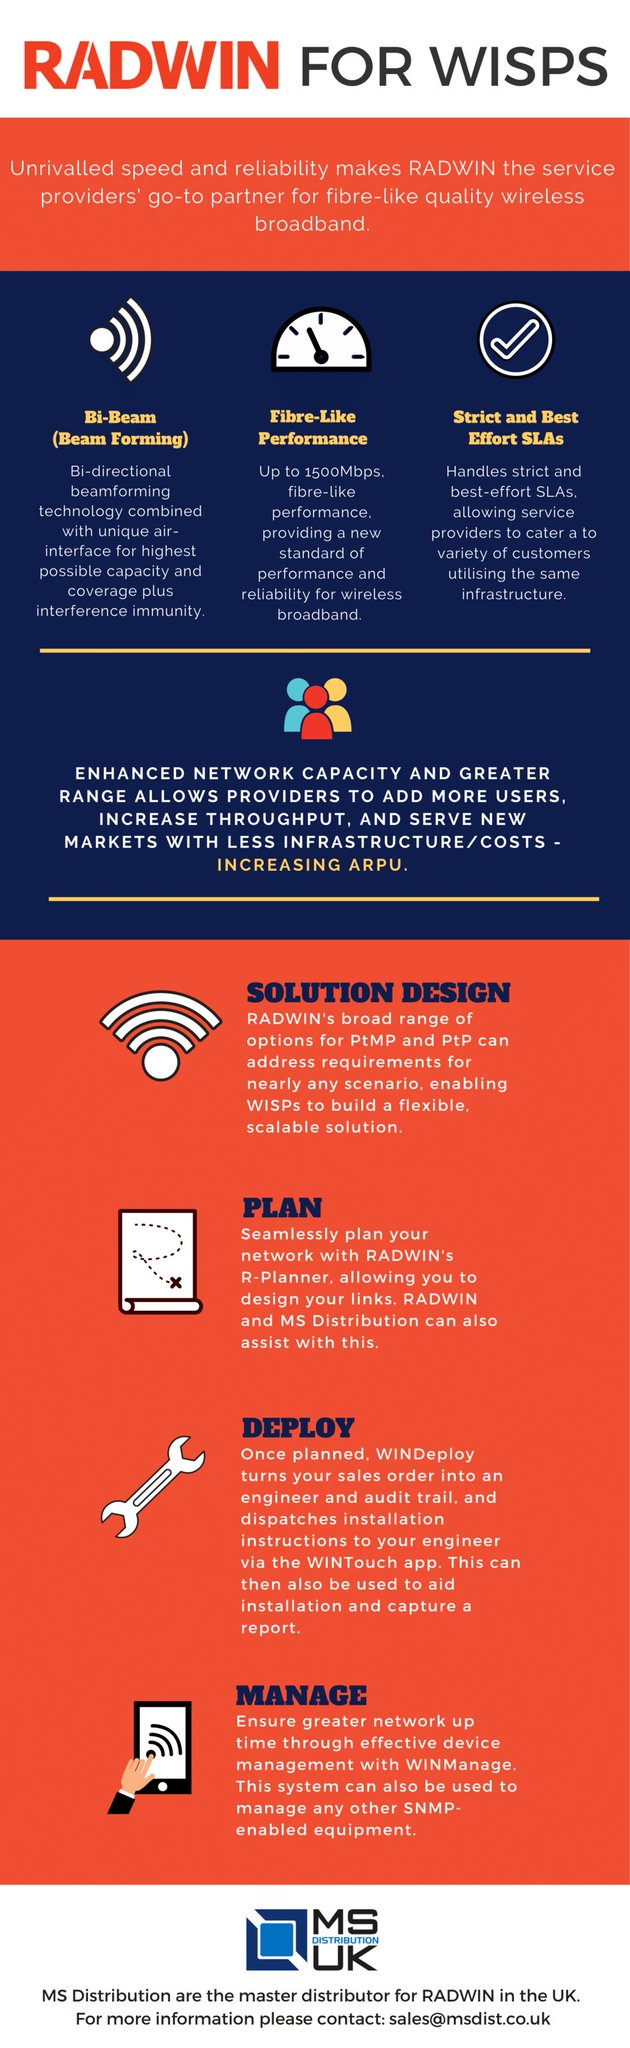 "MS (Distribution) UK on Twitter: ""Take a look at our brand new @radwin  #infographic detailing why #RADWIN are the service providers' go-to partner  for #fibre-like quality #wireless #broadband. View #RADWIN Products at @"